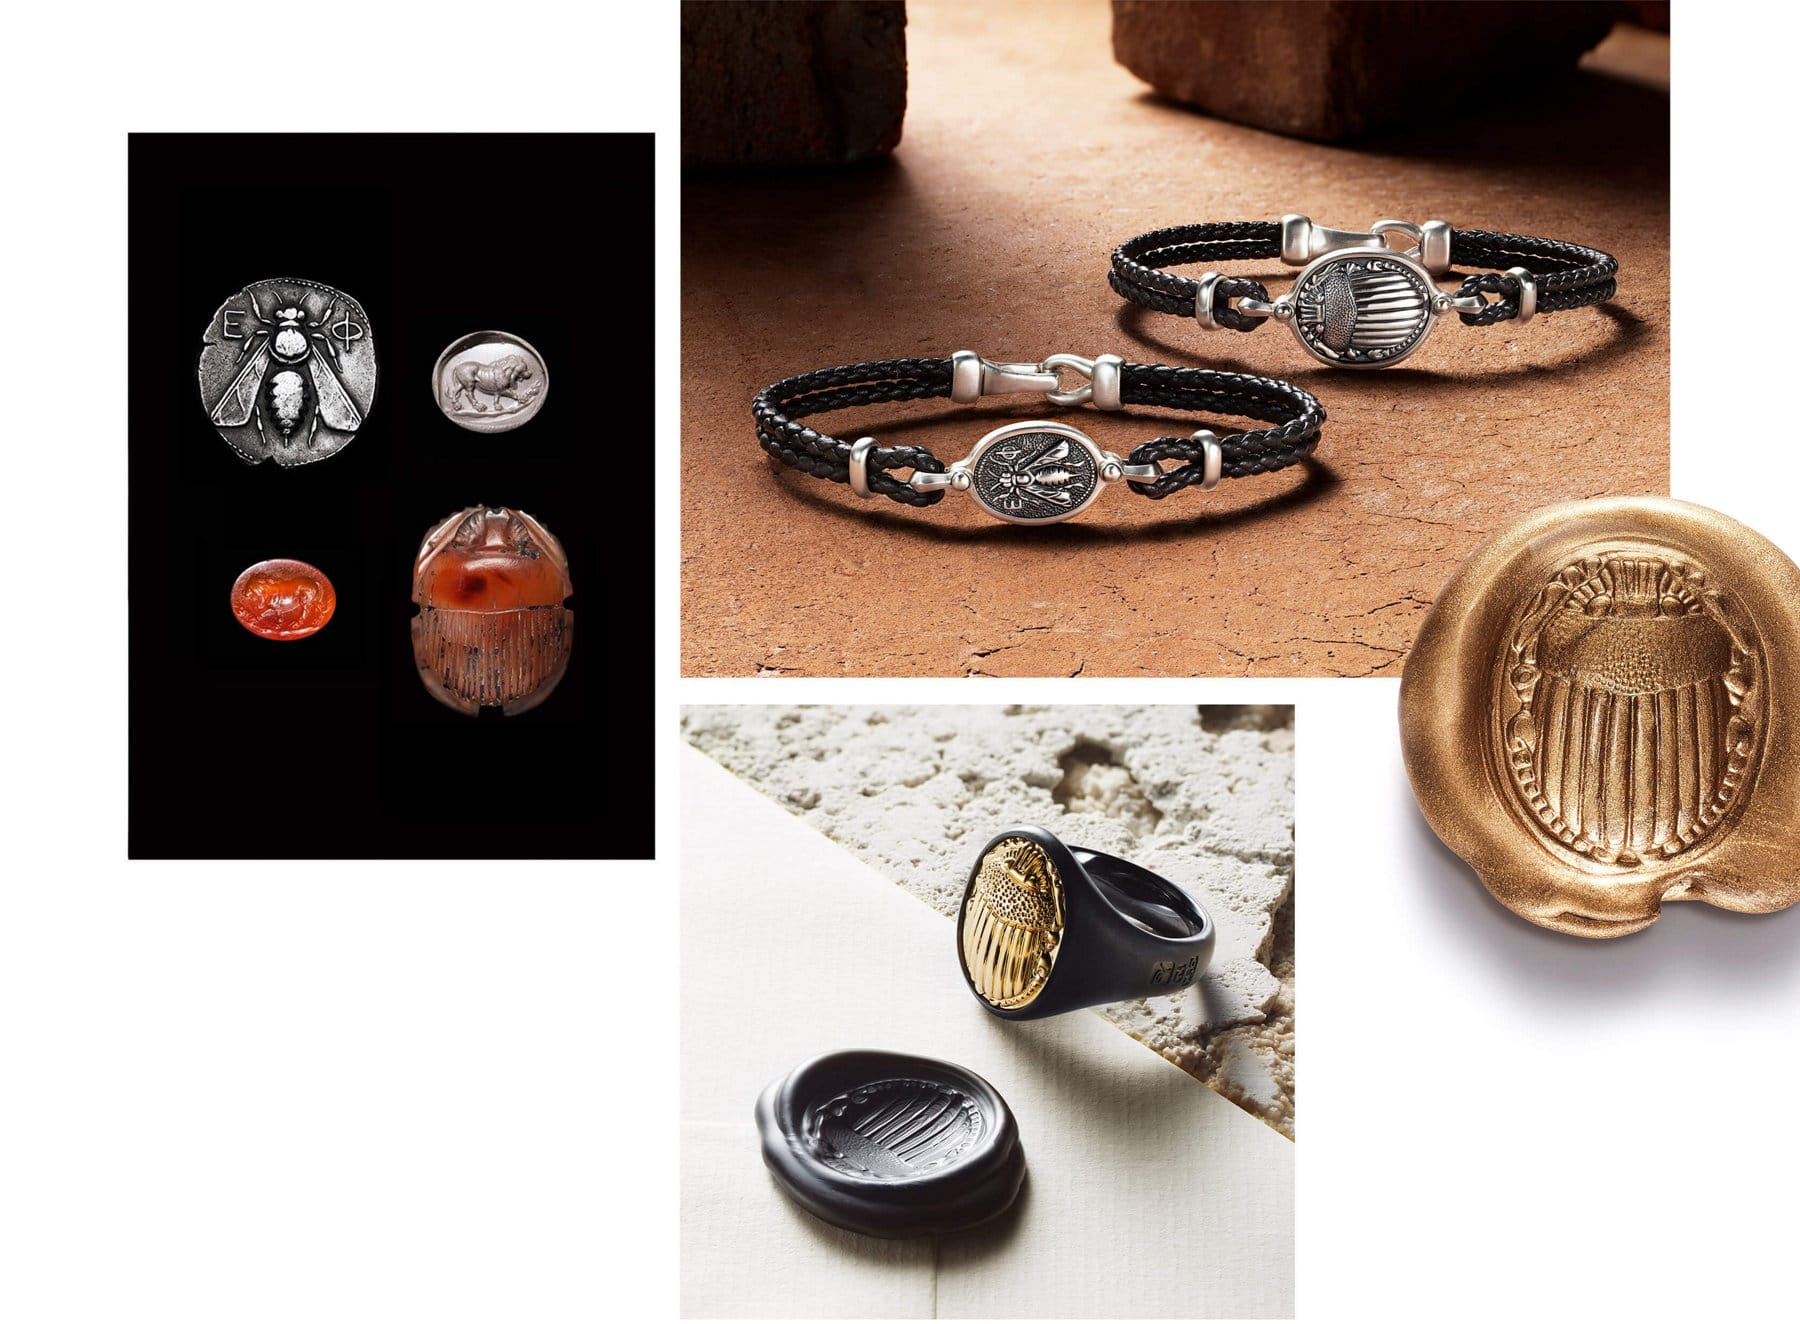 Three color photos are juxtaposed on a white background. On the left is a color photo showing two coins with a bee or lion and two carnelian gemstones carved with a lion or scarab. To the right are two color photos of David Yurman Petrvs designs shot on stone backgrounds. One features bracelets with black leather and a bee or scarab motif in sterling silver. The other features a signet ring in black titanium with an 18K yellow gold scarab next to a piece of black wax imprinted with the same scarab motif.